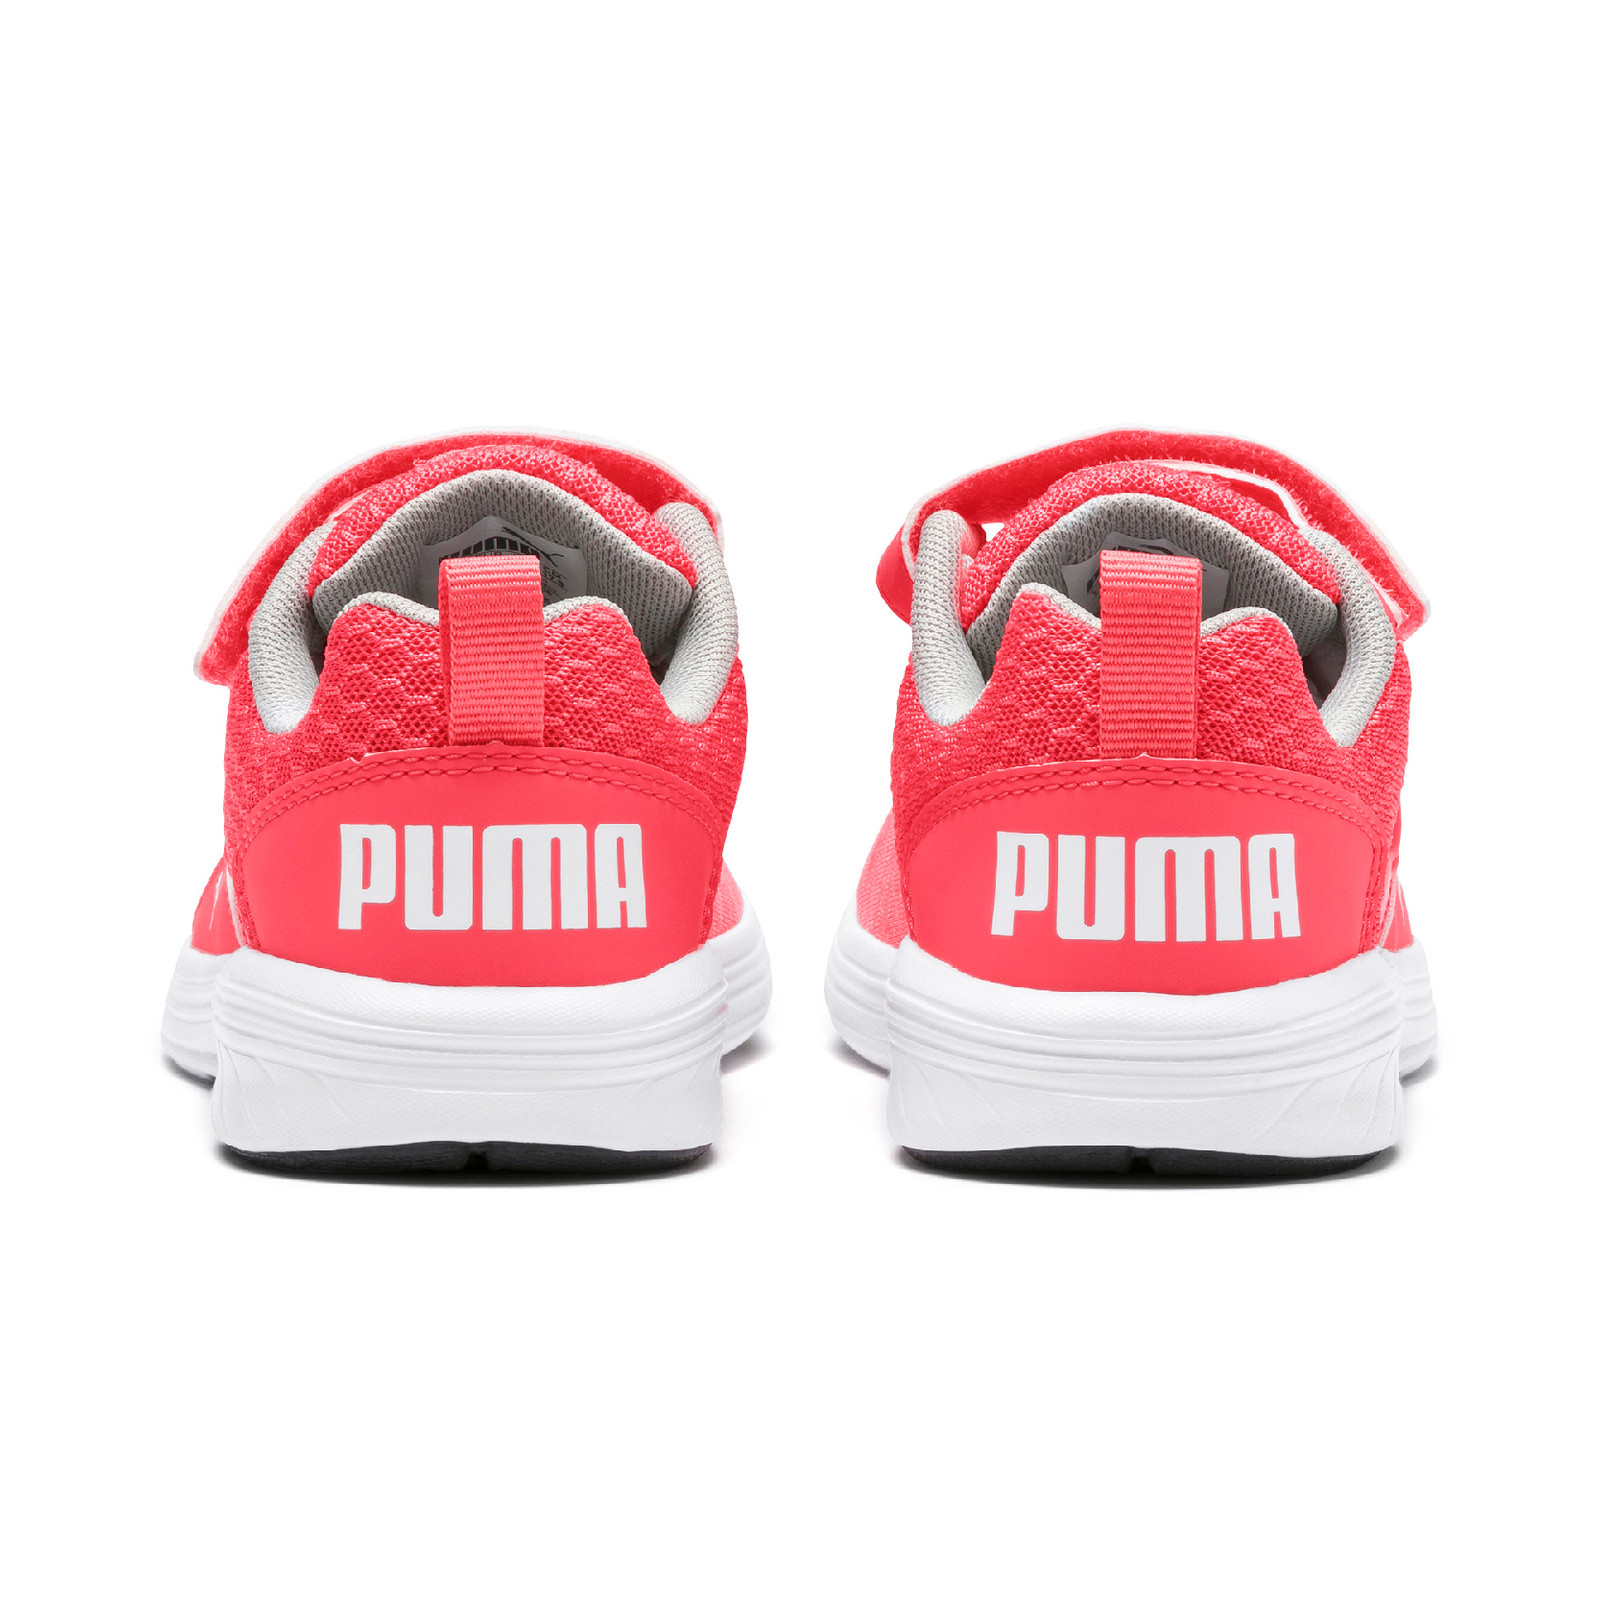 Details zu PUMA NRGY Comet V PS Kinder Low Boot Sneaker Sportschuhe Calypso Coral Weiss